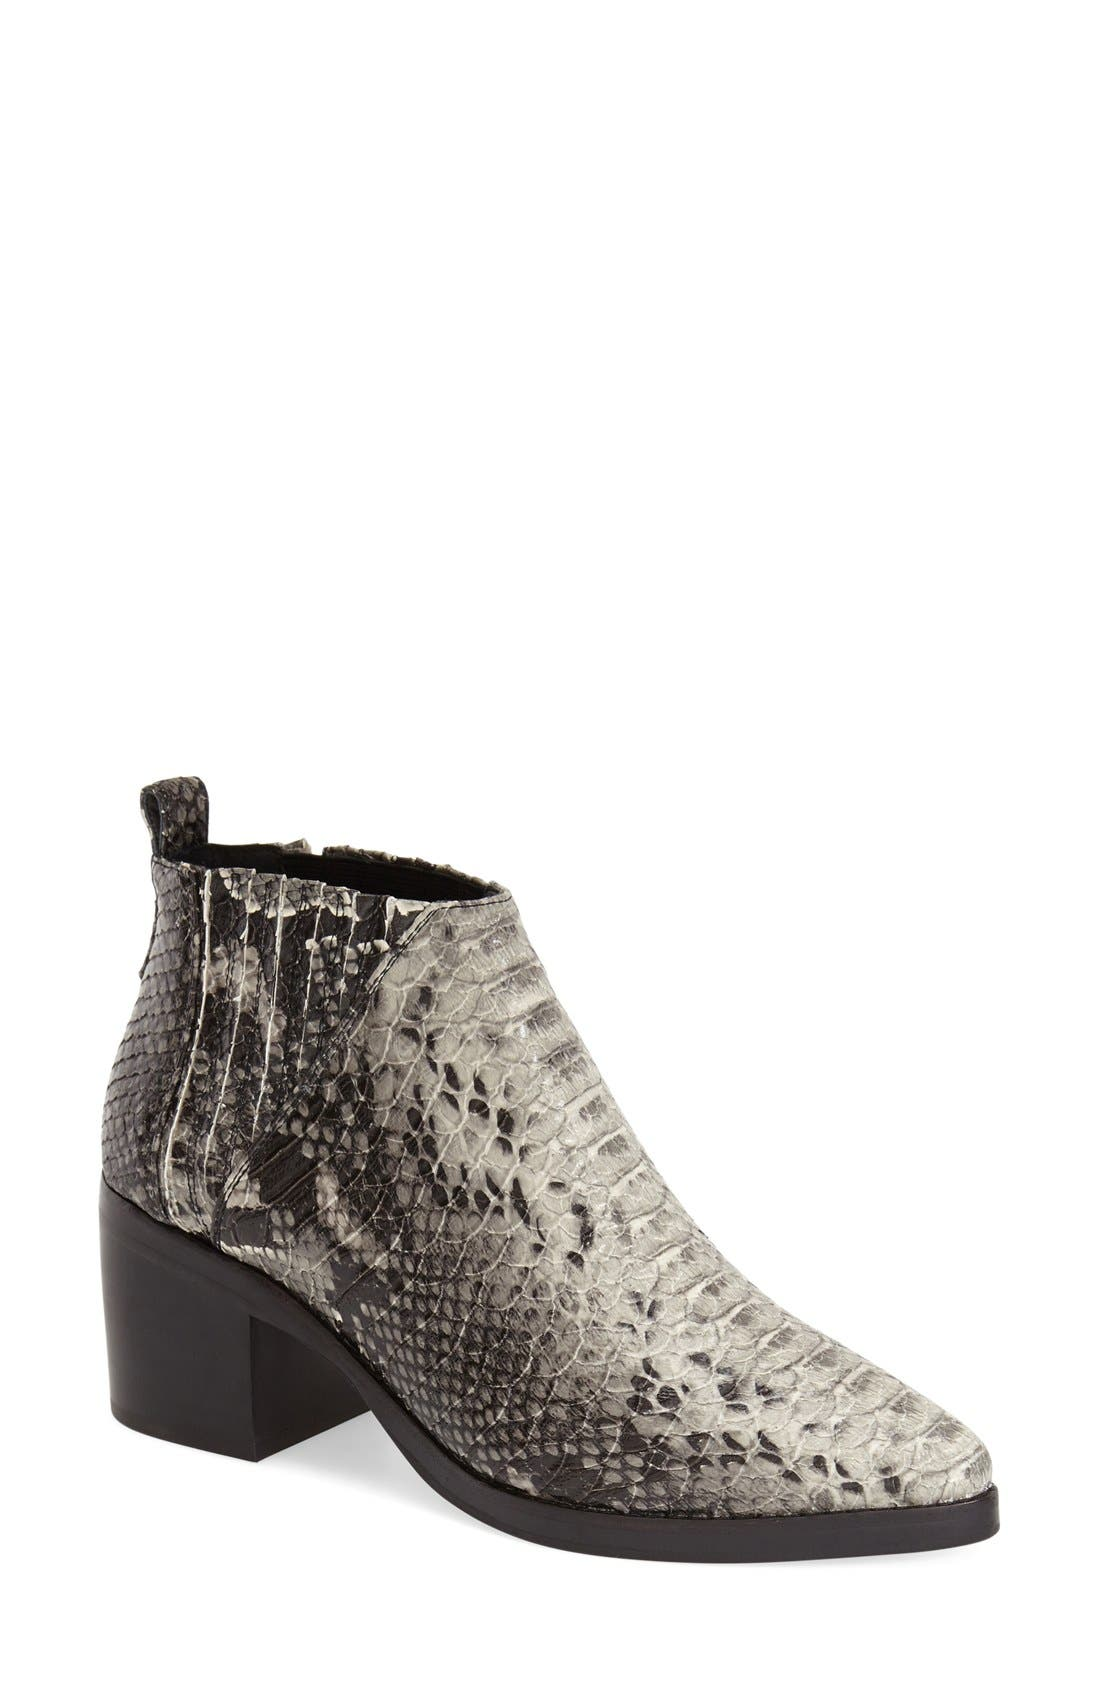 Main Image - Jeffrey Campbell 'Weber' Ankle Boot (Women)